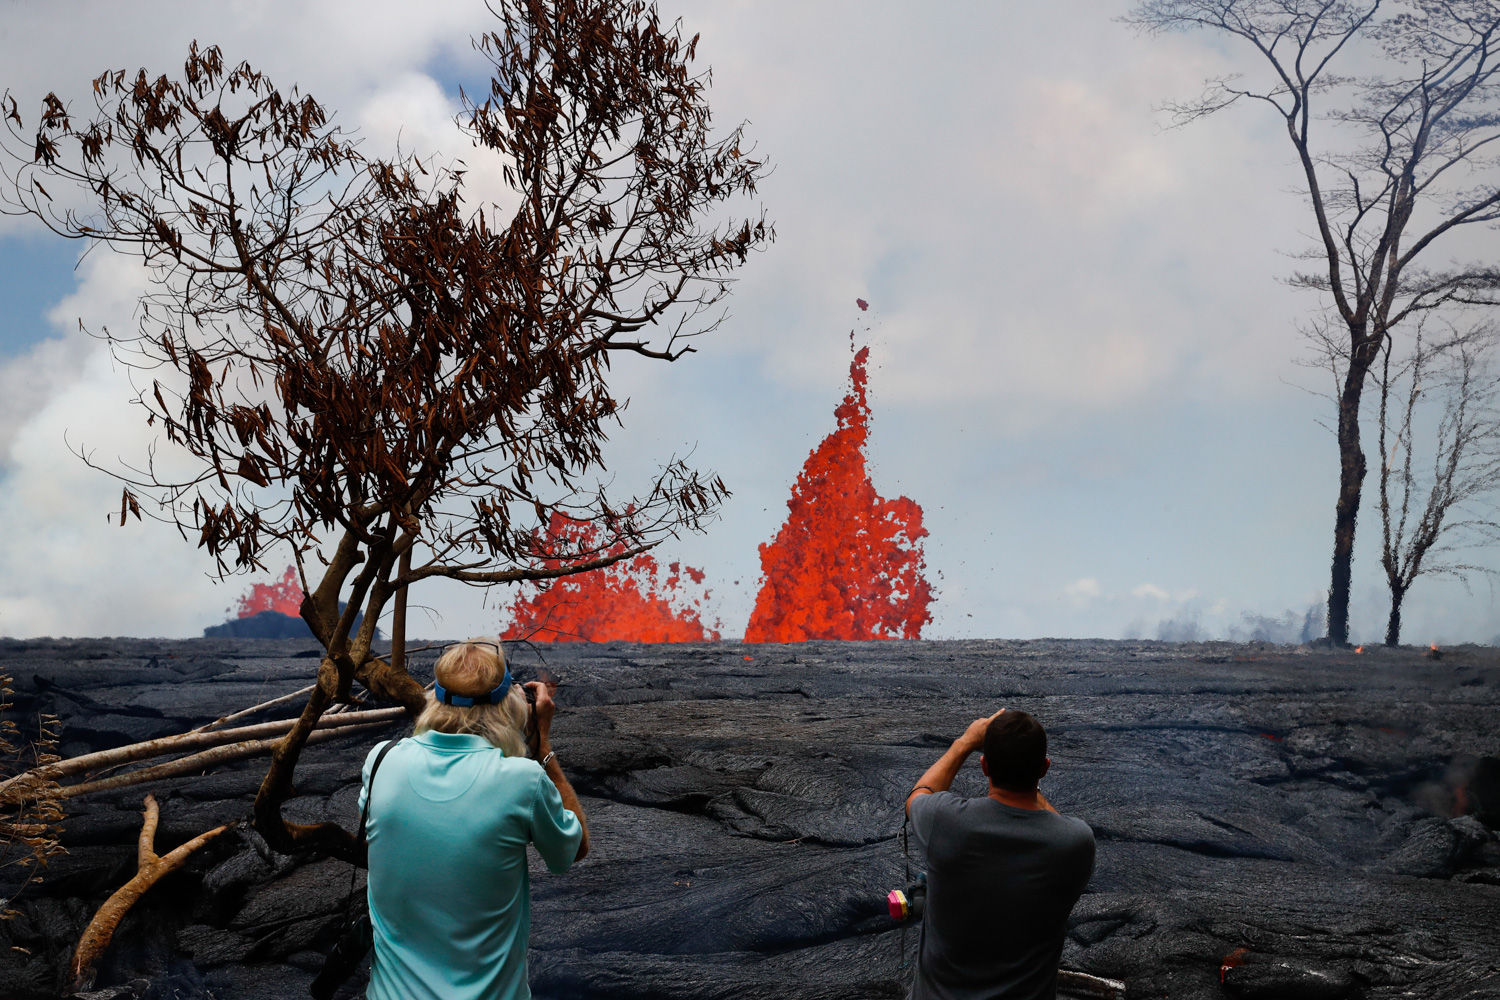 <div class='meta'><div class='origin-logo' data-origin='none'></div><span class='caption-text' data-credit='Jae C. Hong/AP Photo'>Heath Dalton, right, and Jim Carpenter take pictures as fissures spew lava in the Leilani Estates subdivision near Pahoa, Hawaii, Tuesday, May 22, 2018.</span></div>